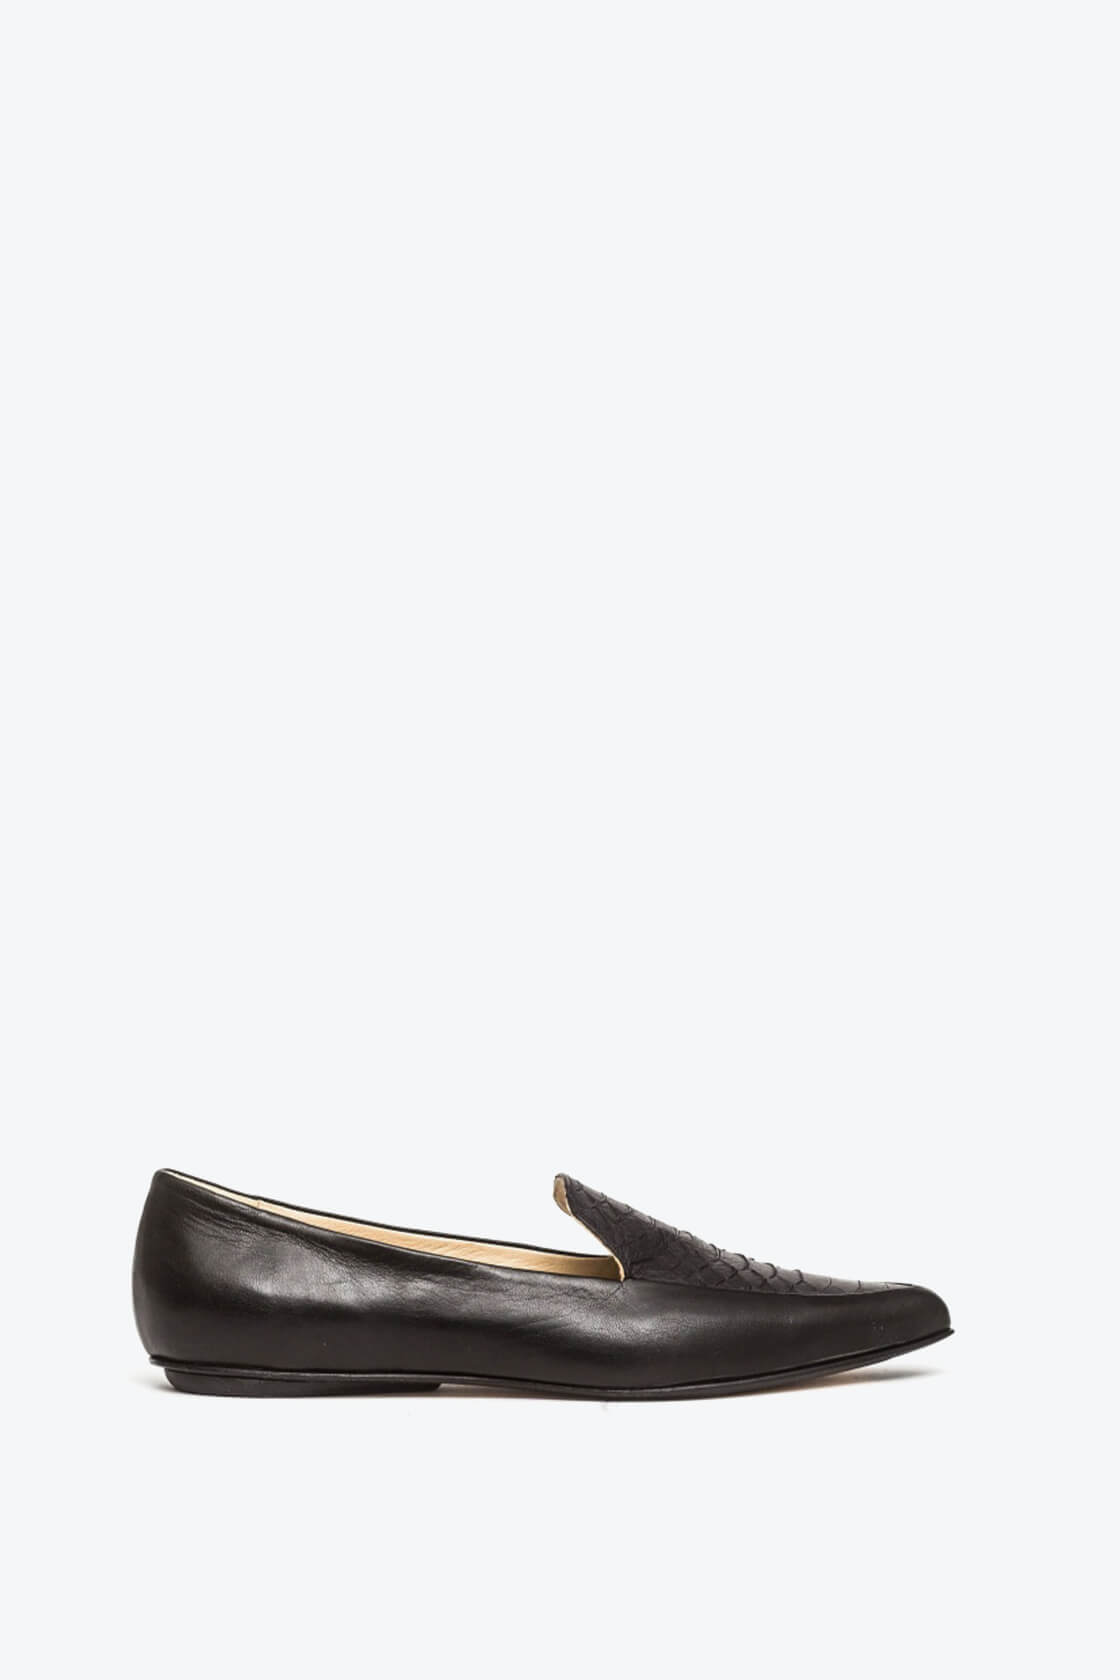 EJK0000022 Molly loafers black 1